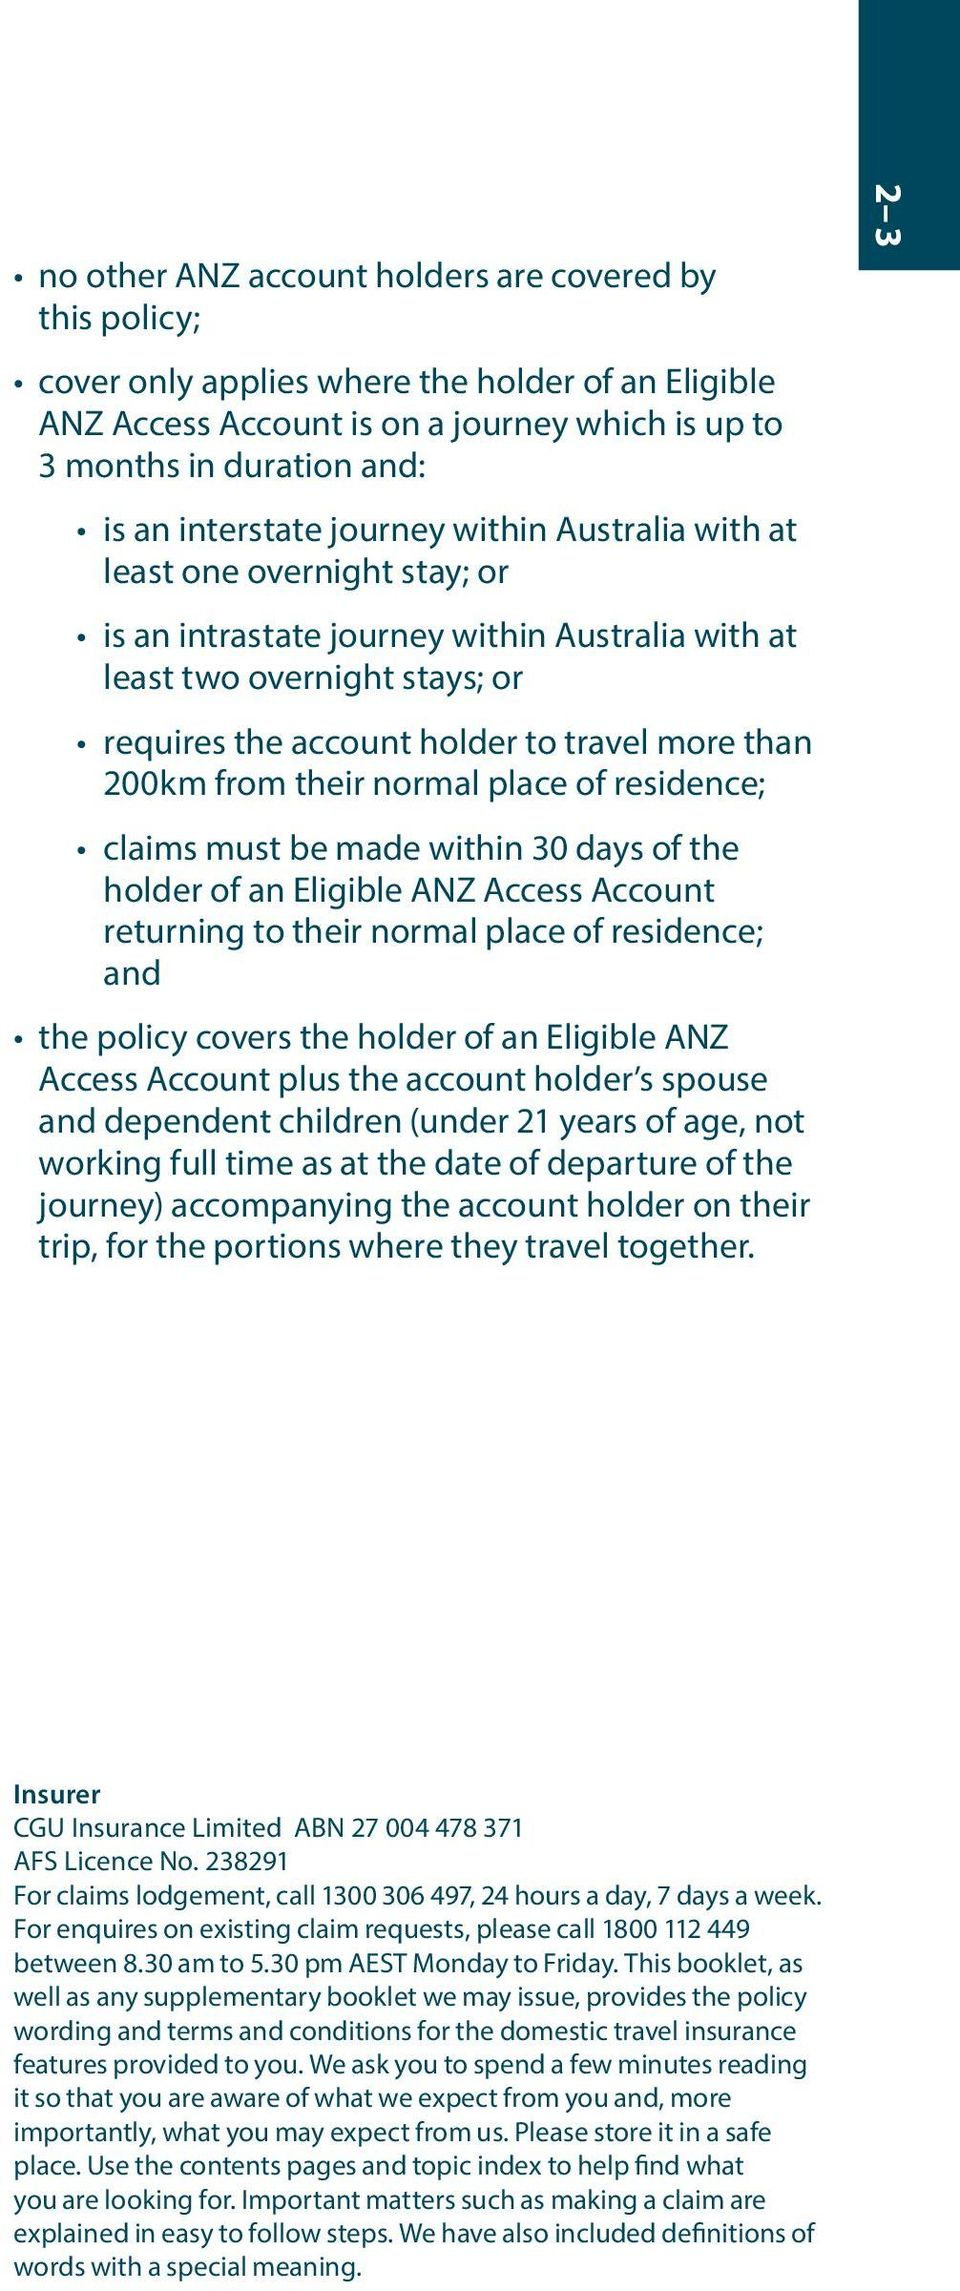 than 200km from their normal place of residence; claims must be made within 30 days of the holder of an Eligible ANZ Access Account returning to their normal place of residence; and the policy covers